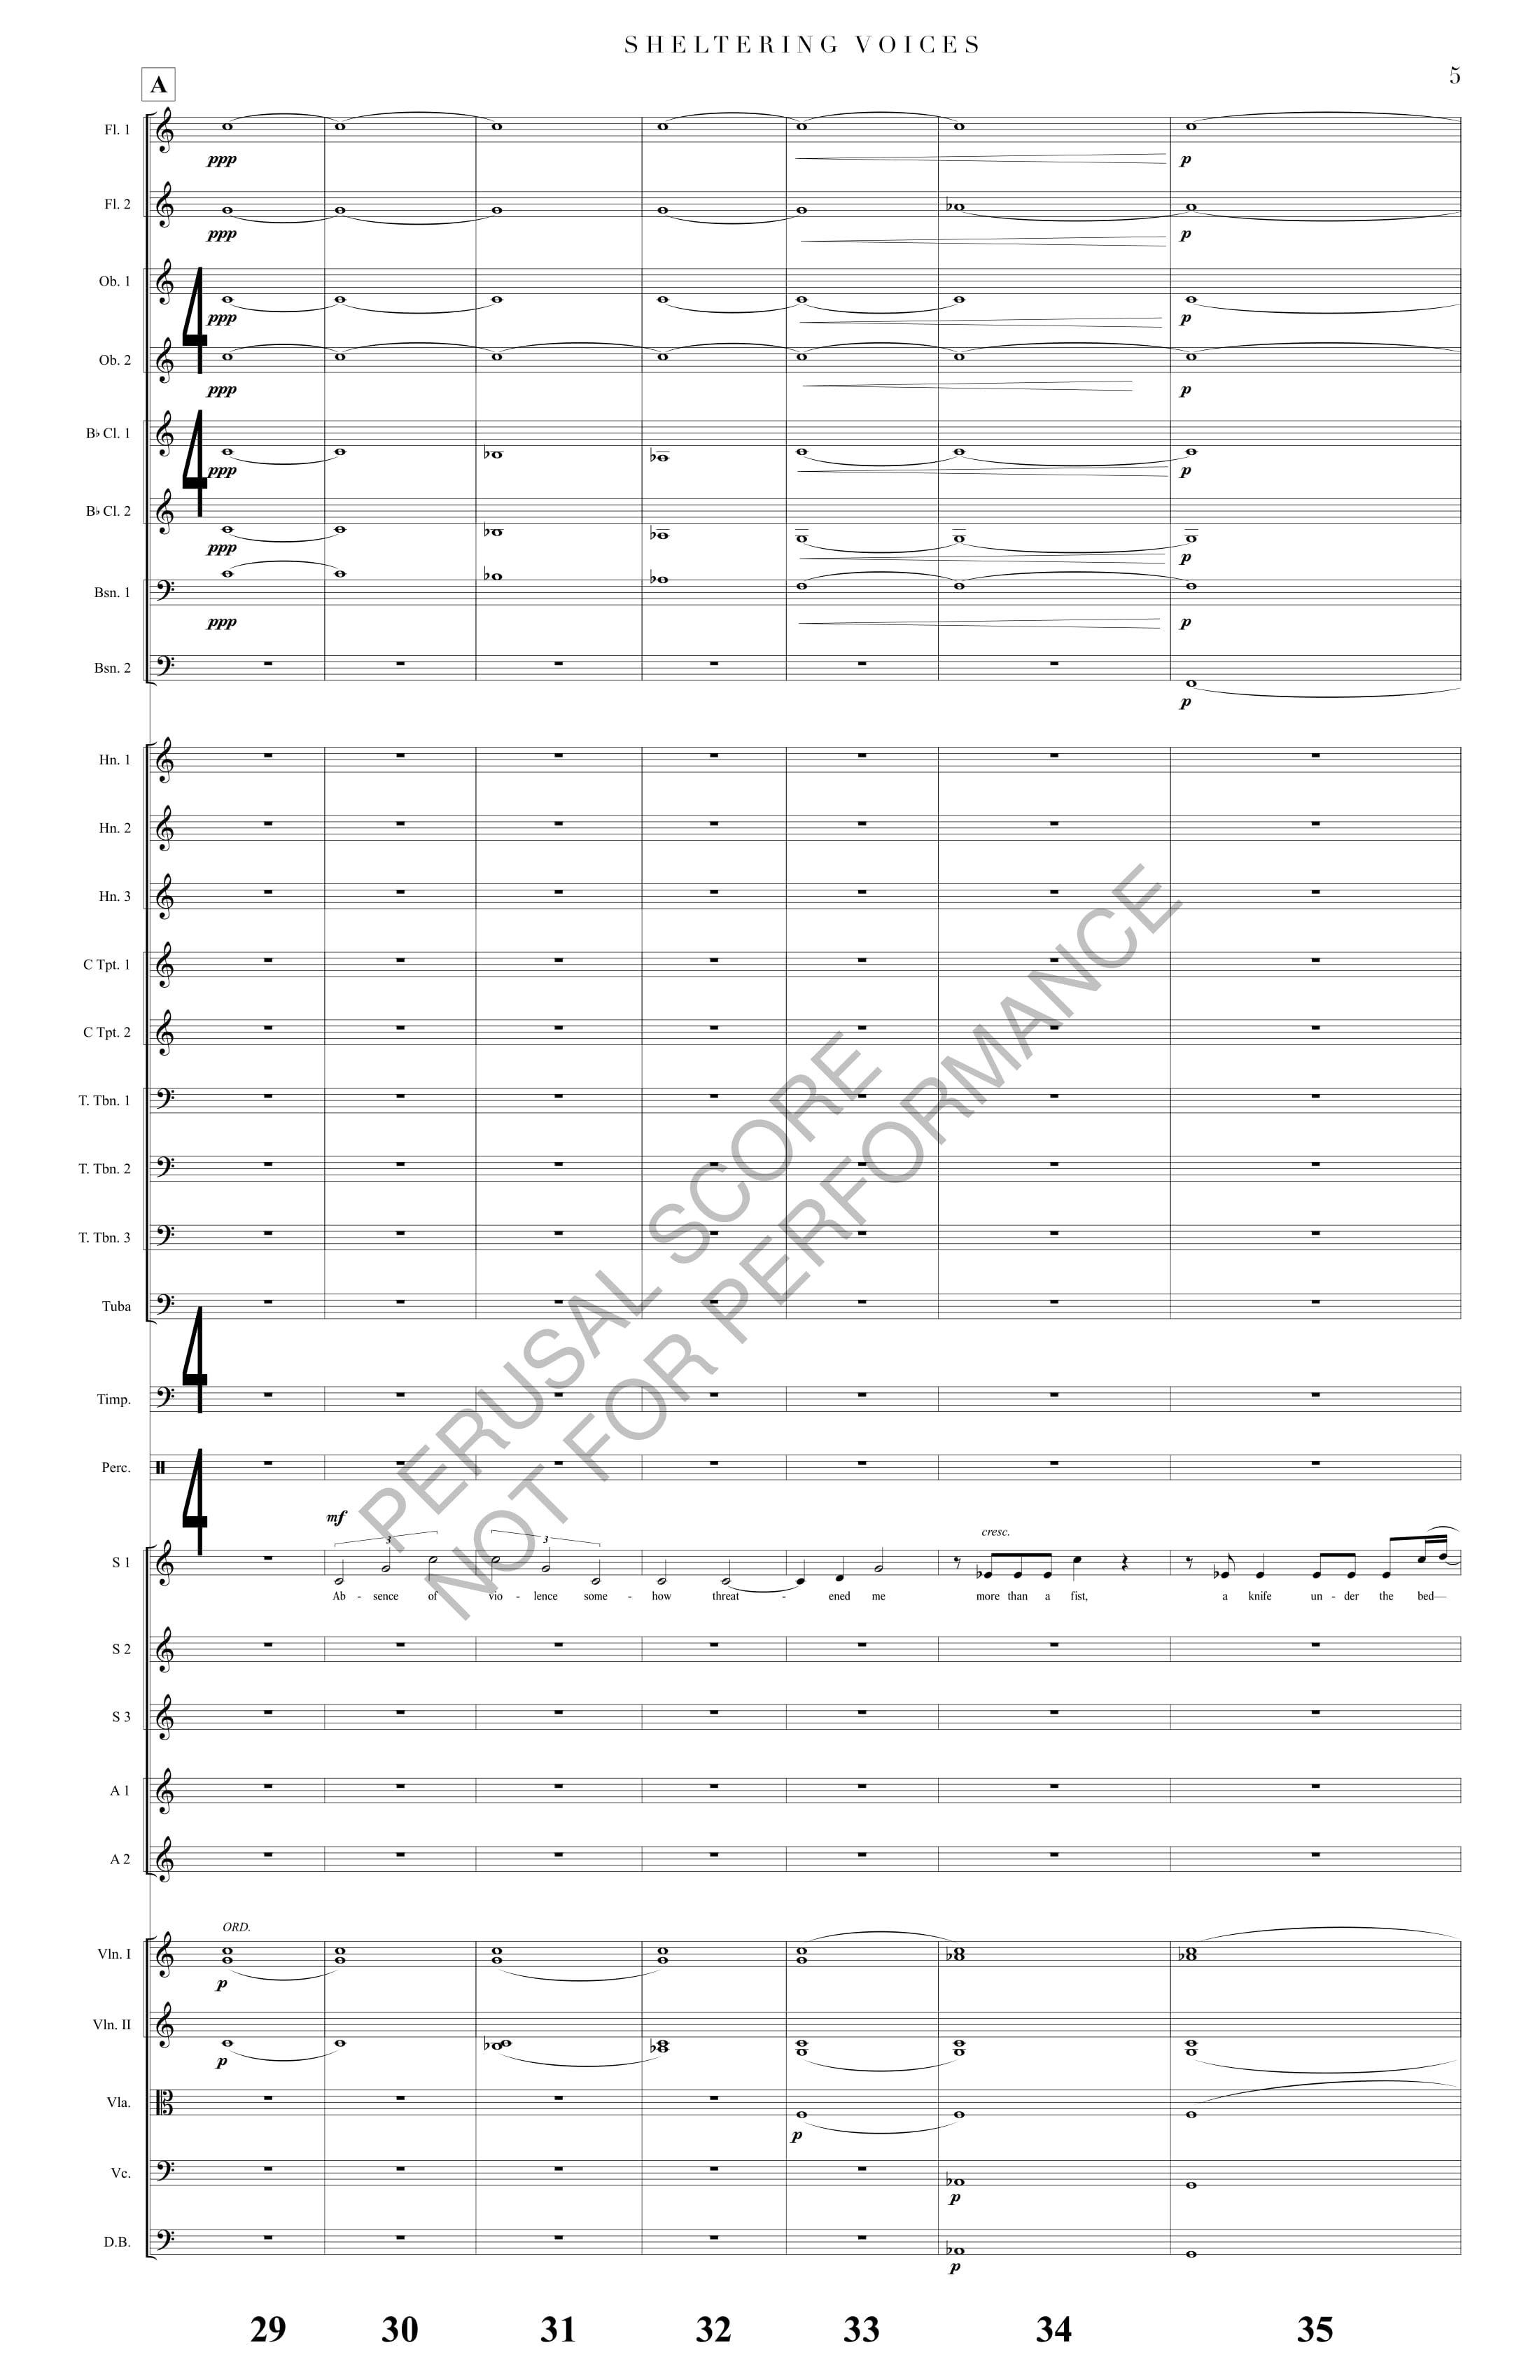 Boyd Sheltering Voices Score-watermark-13.jpg